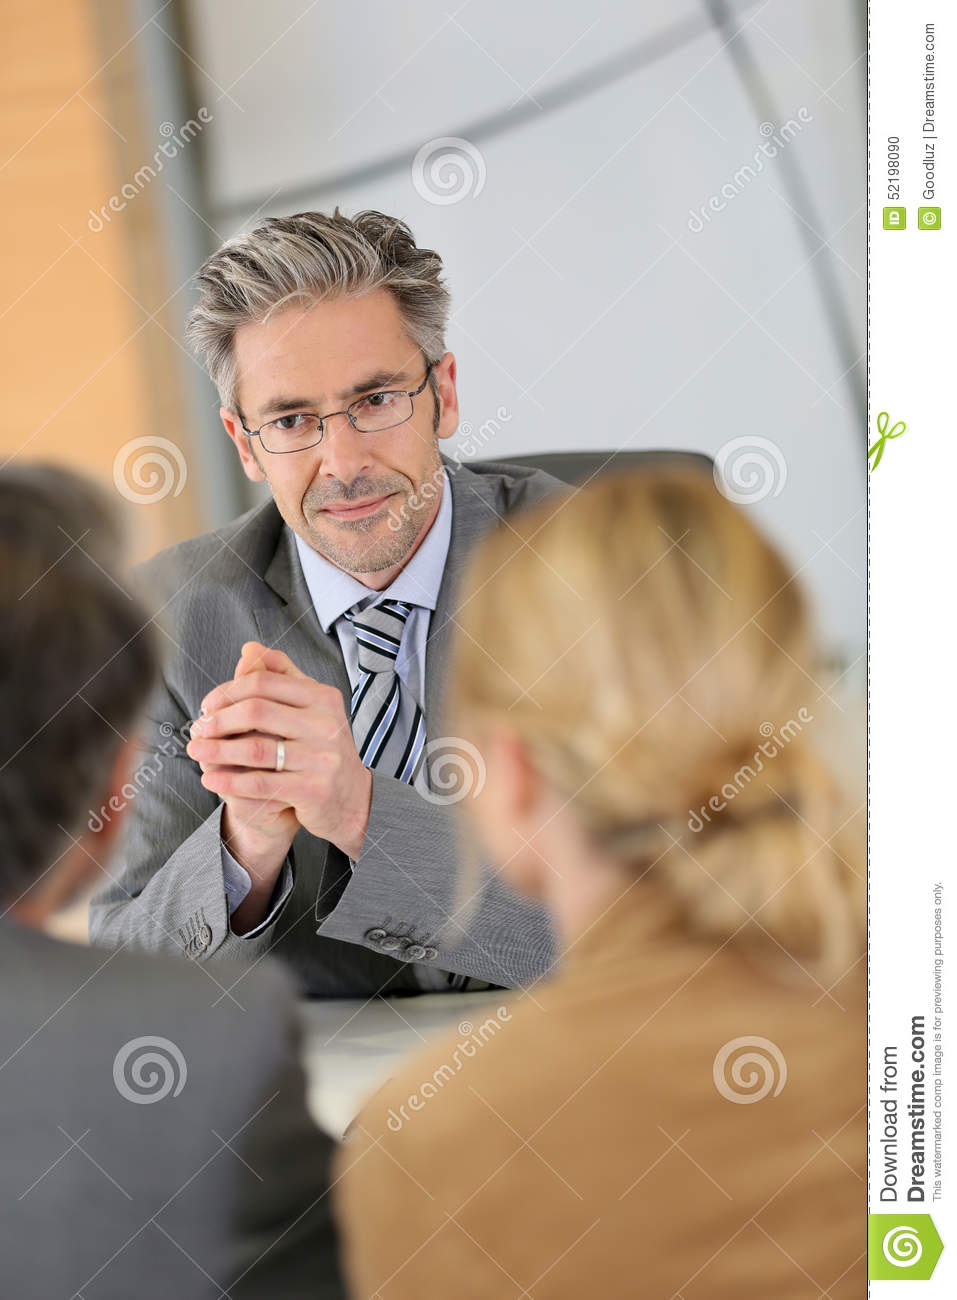 Banking consultant listening to clients